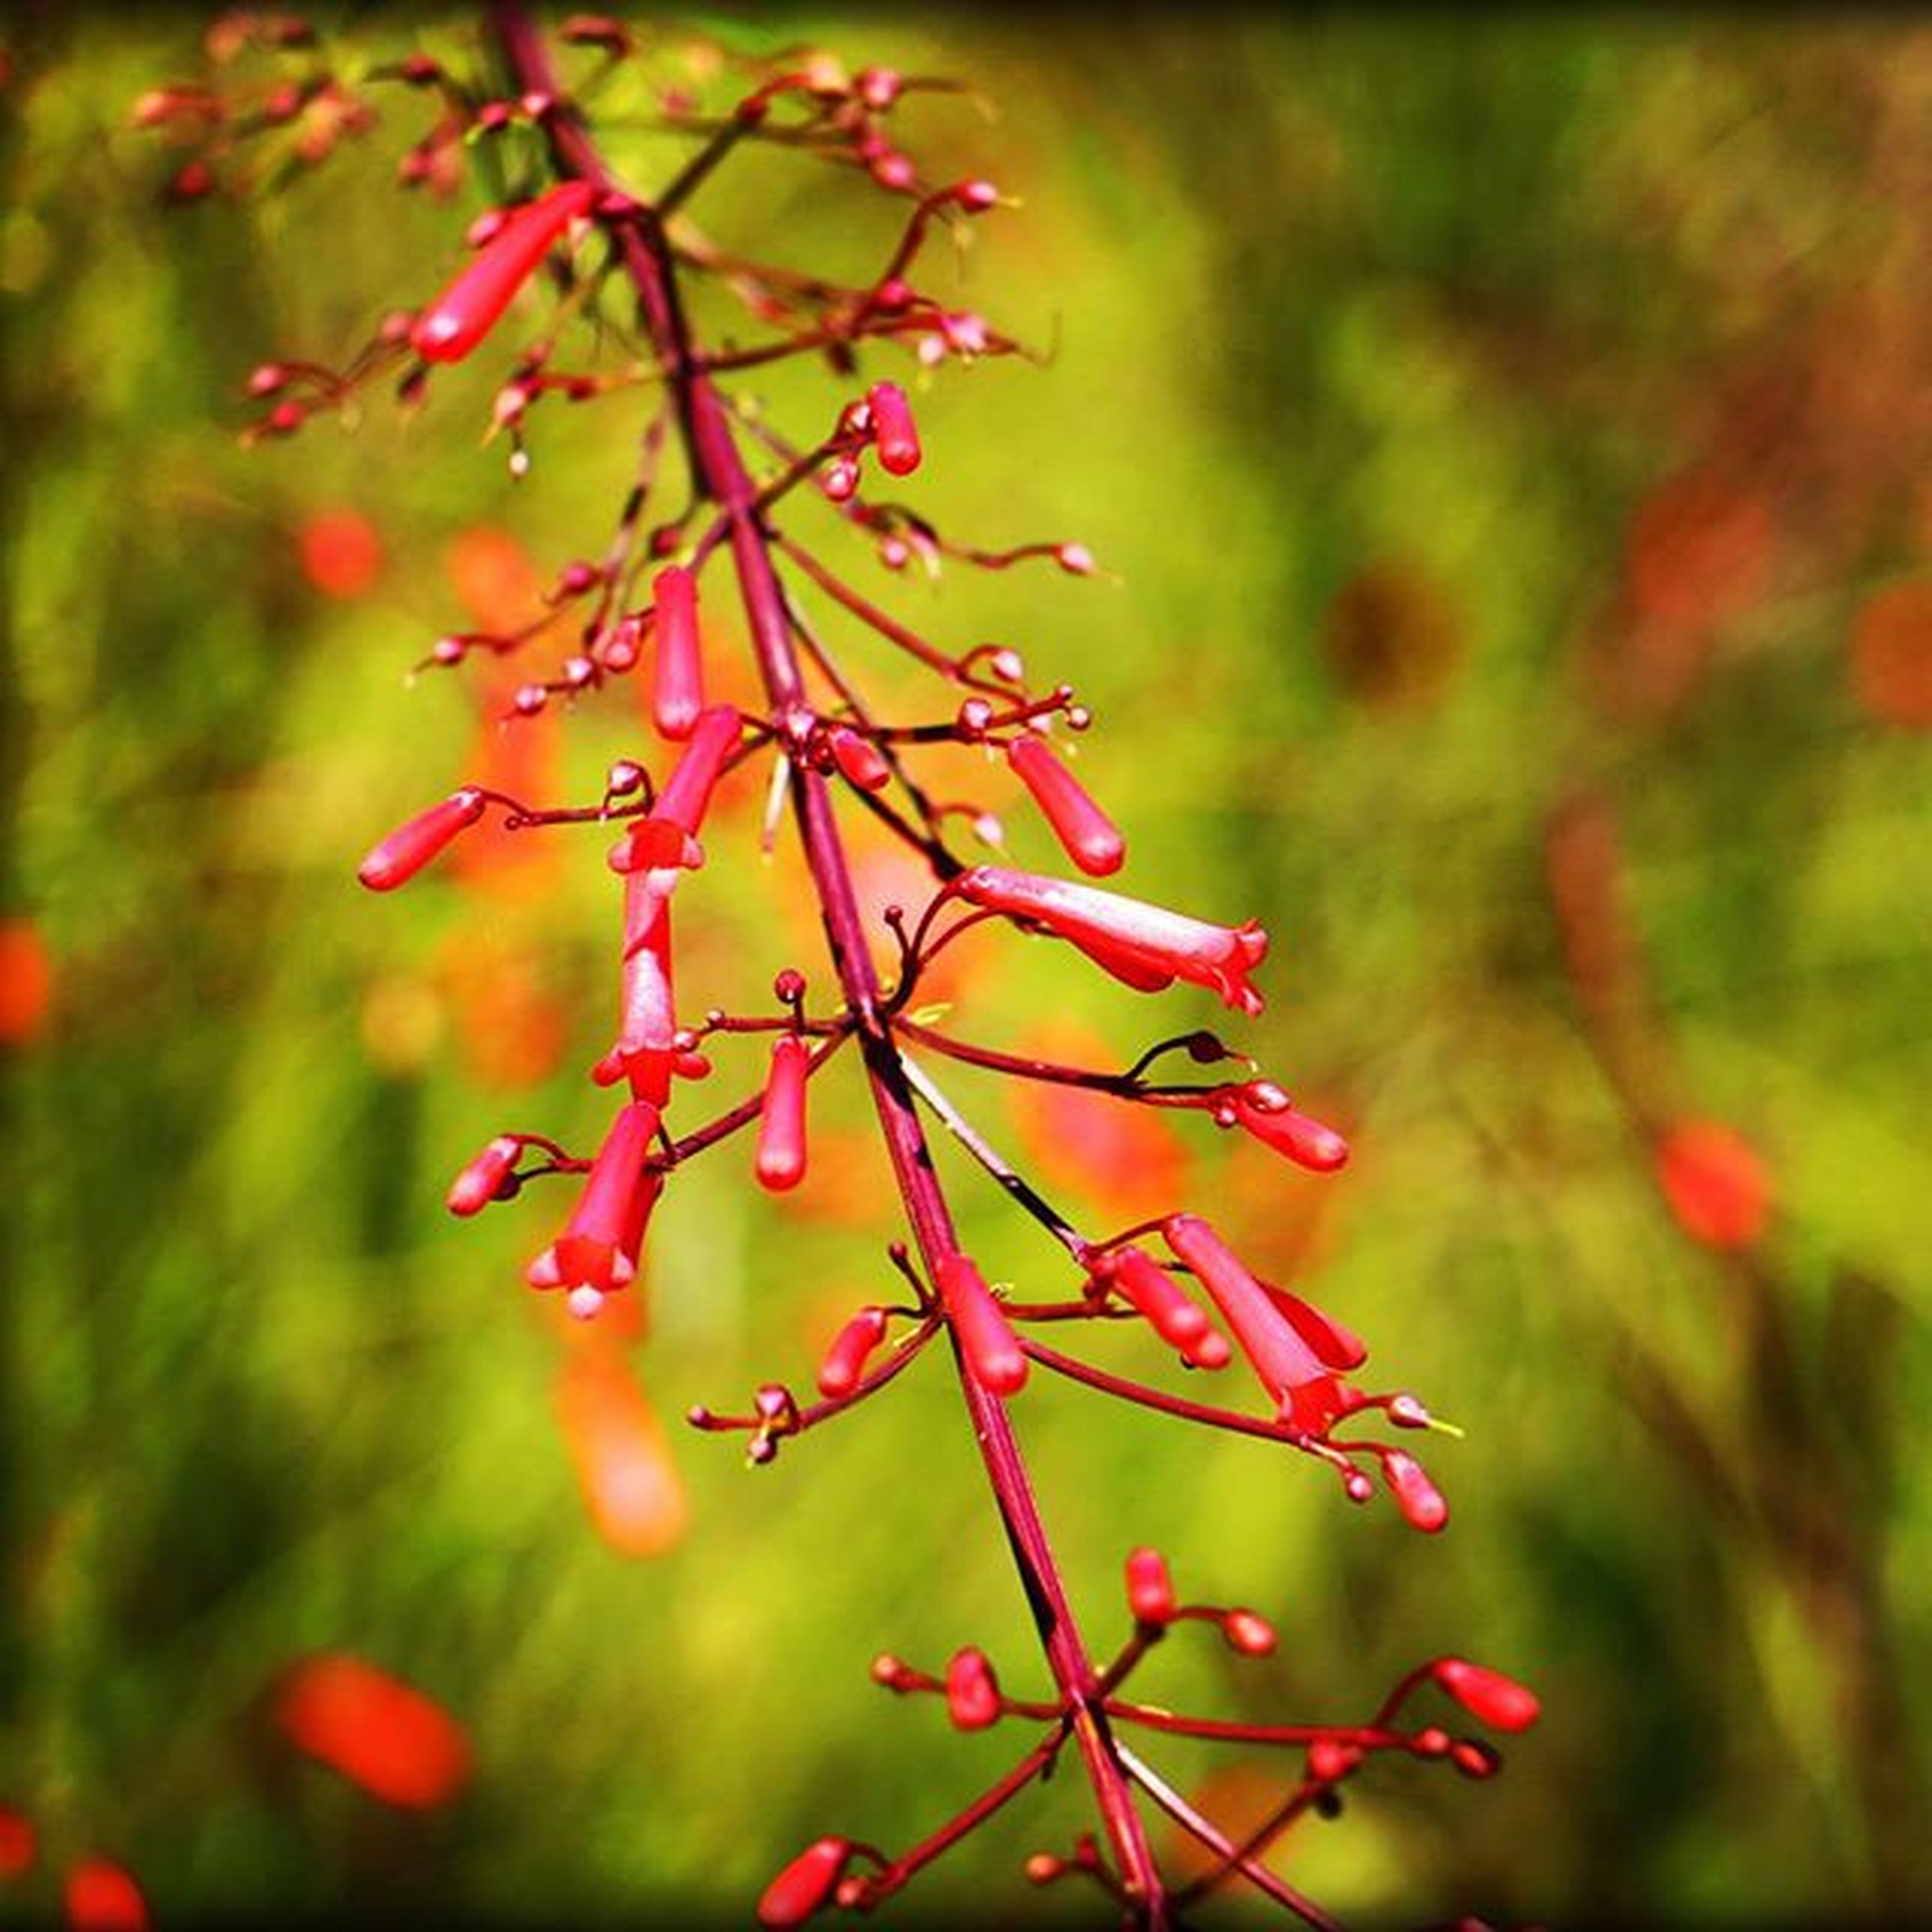 red, growth, focus on foreground, branch, close-up, leaf, nature, tree, beauty in nature, twig, plant, selective focus, autumn, freshness, tranquility, day, outdoors, season, no people, stem